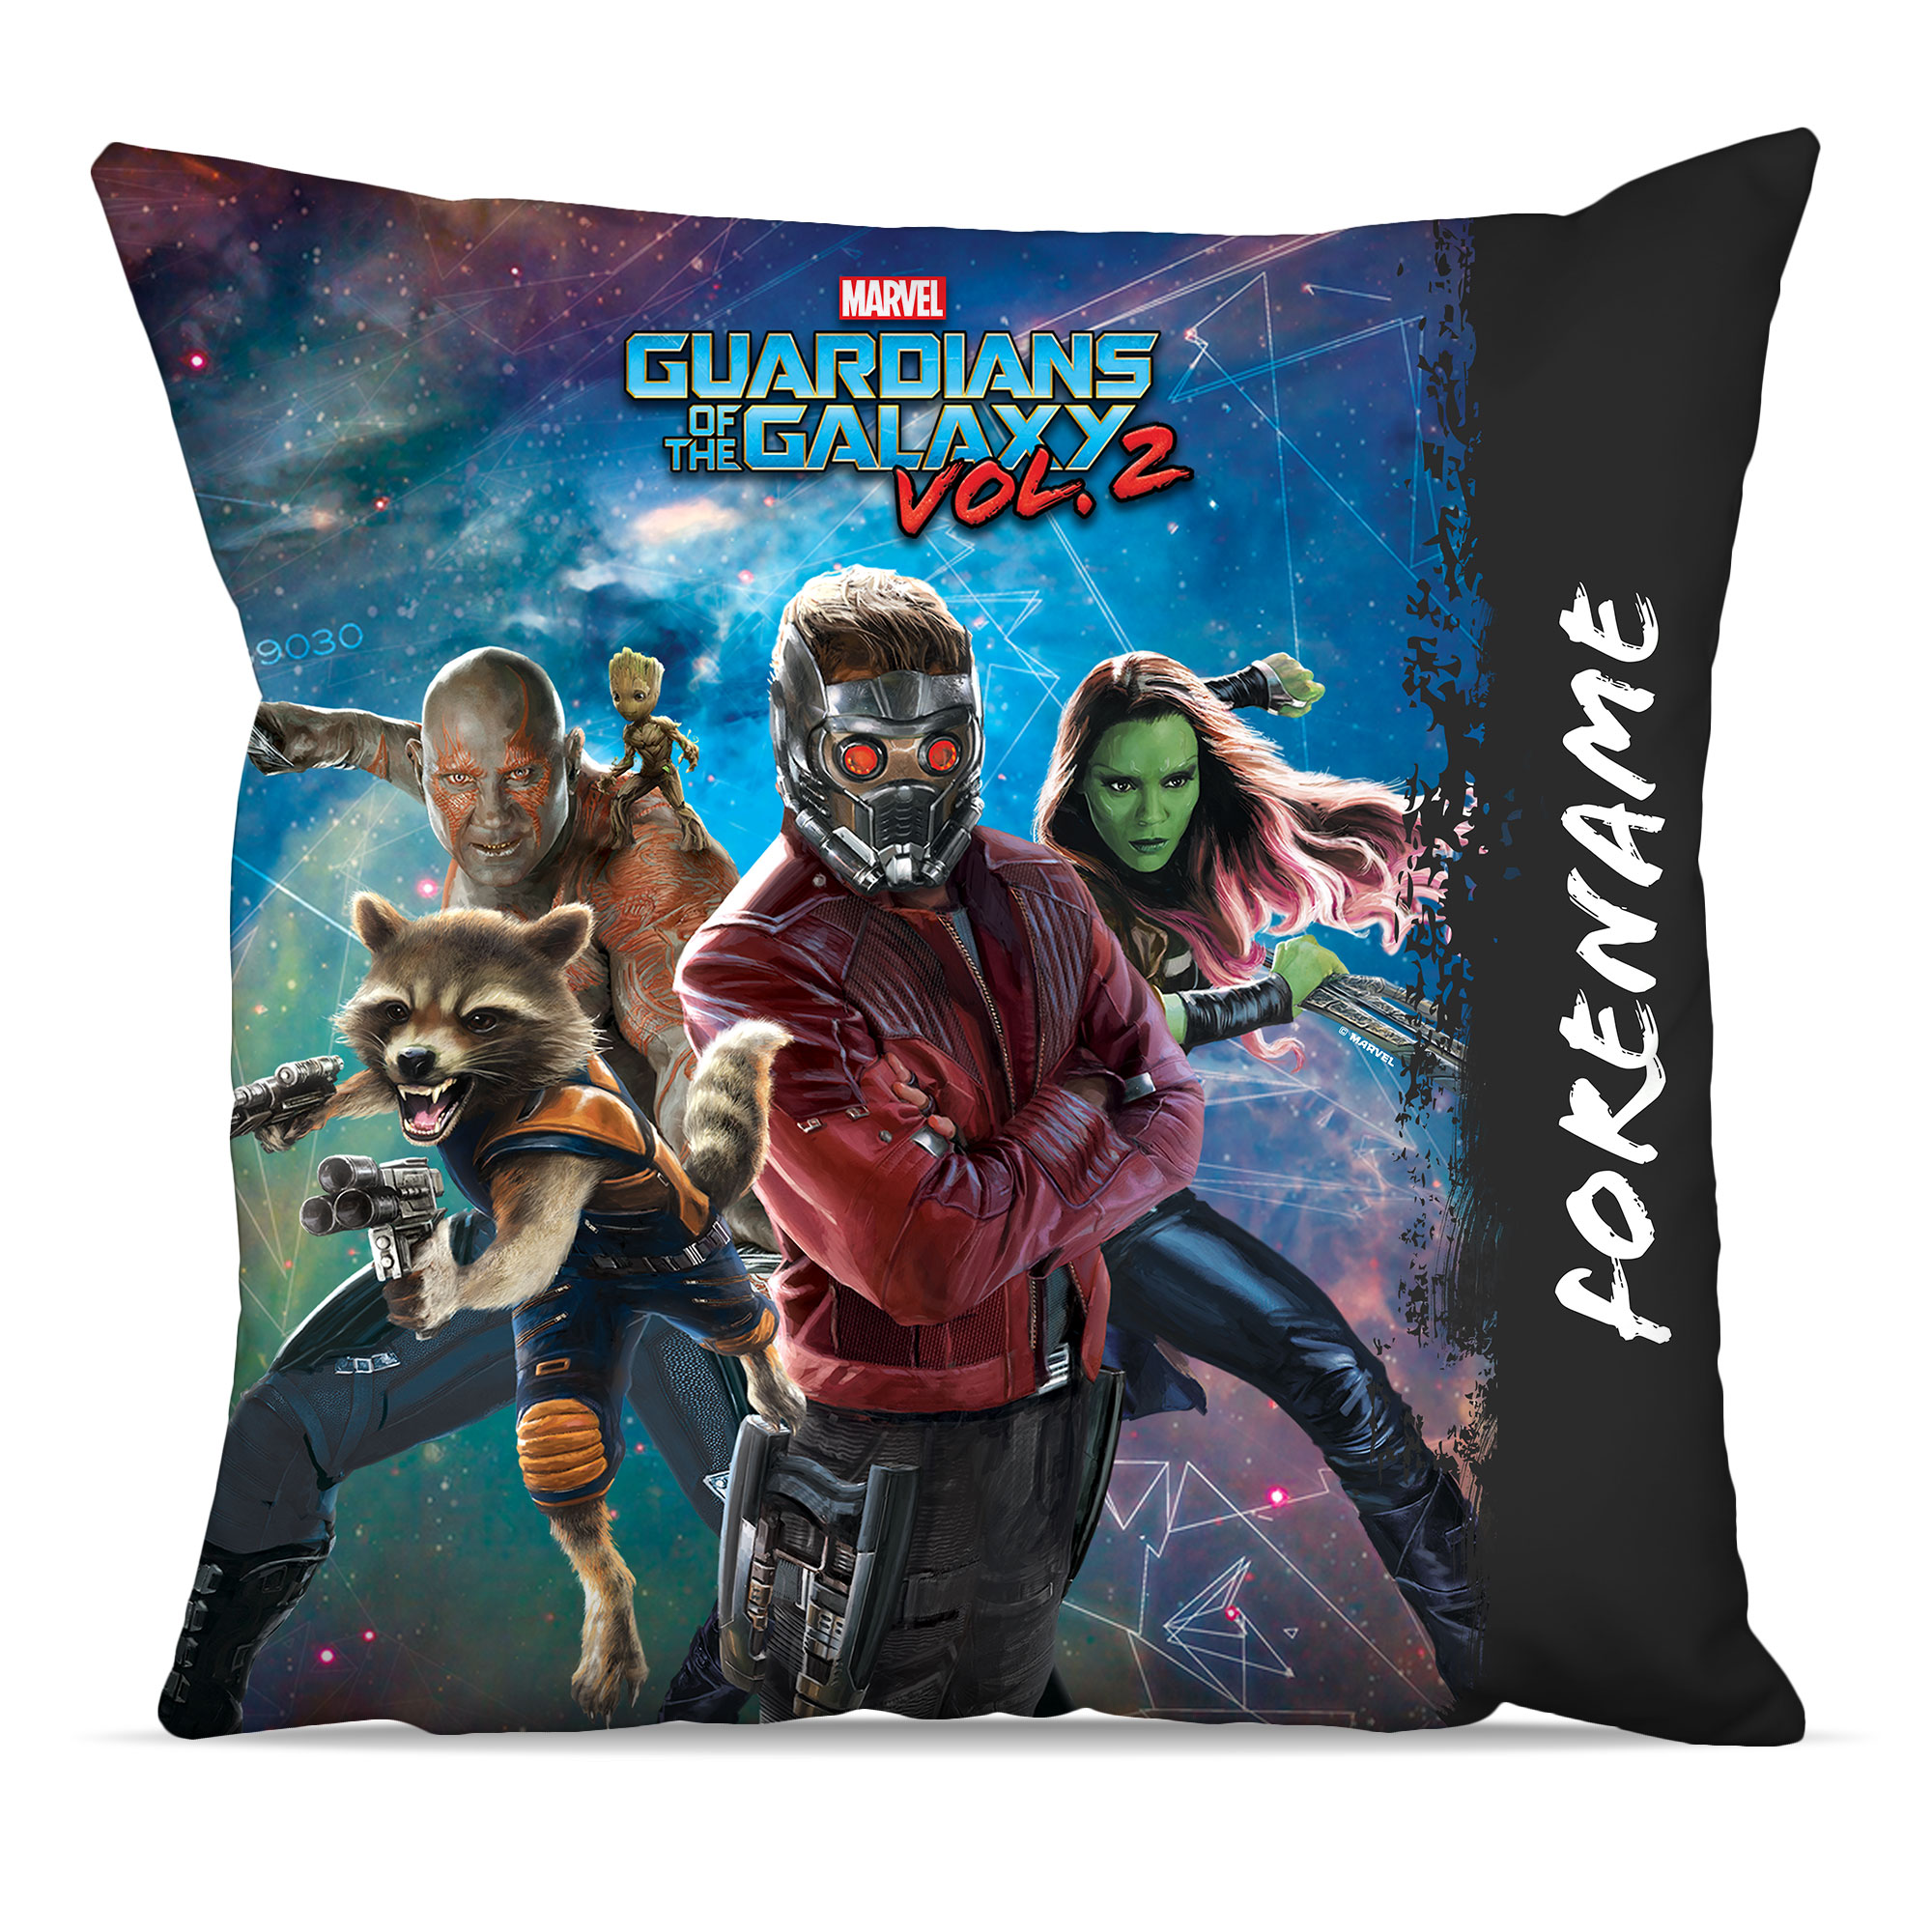 Marvel Guardians of the Galaxy Group Cushion